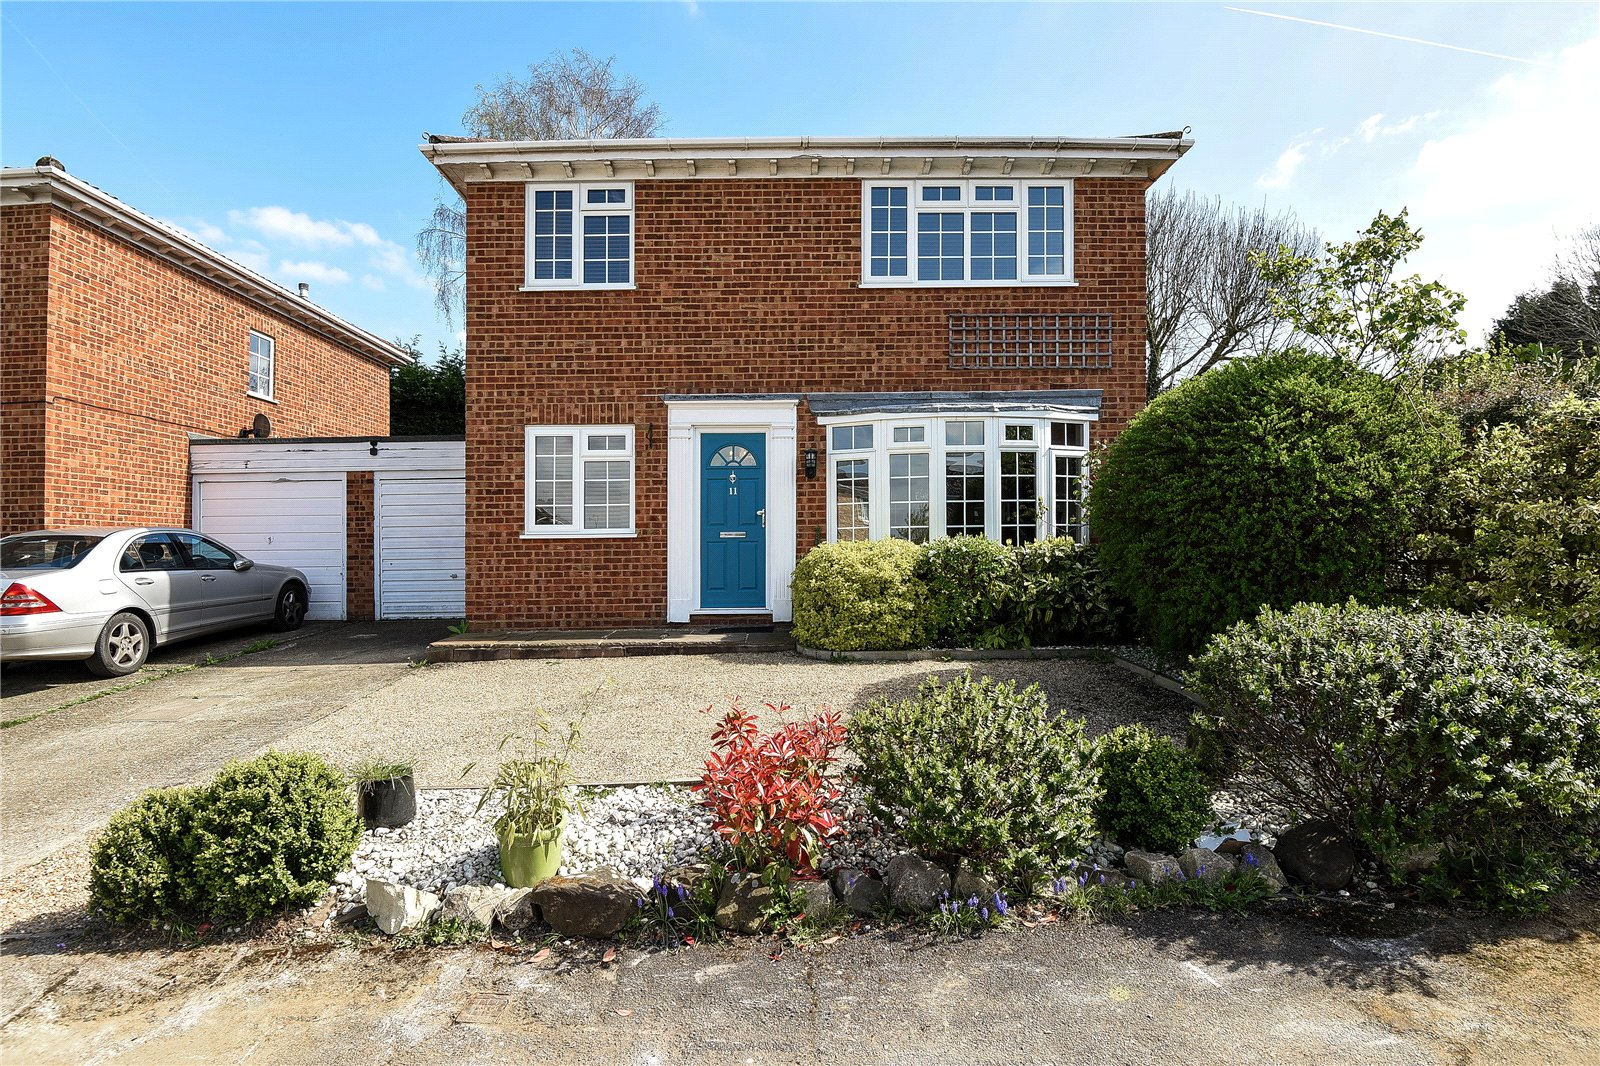 4 Bedrooms Detached House for sale in Challenor Close, Finchampstead, Wokingham, Berkshire, RG40